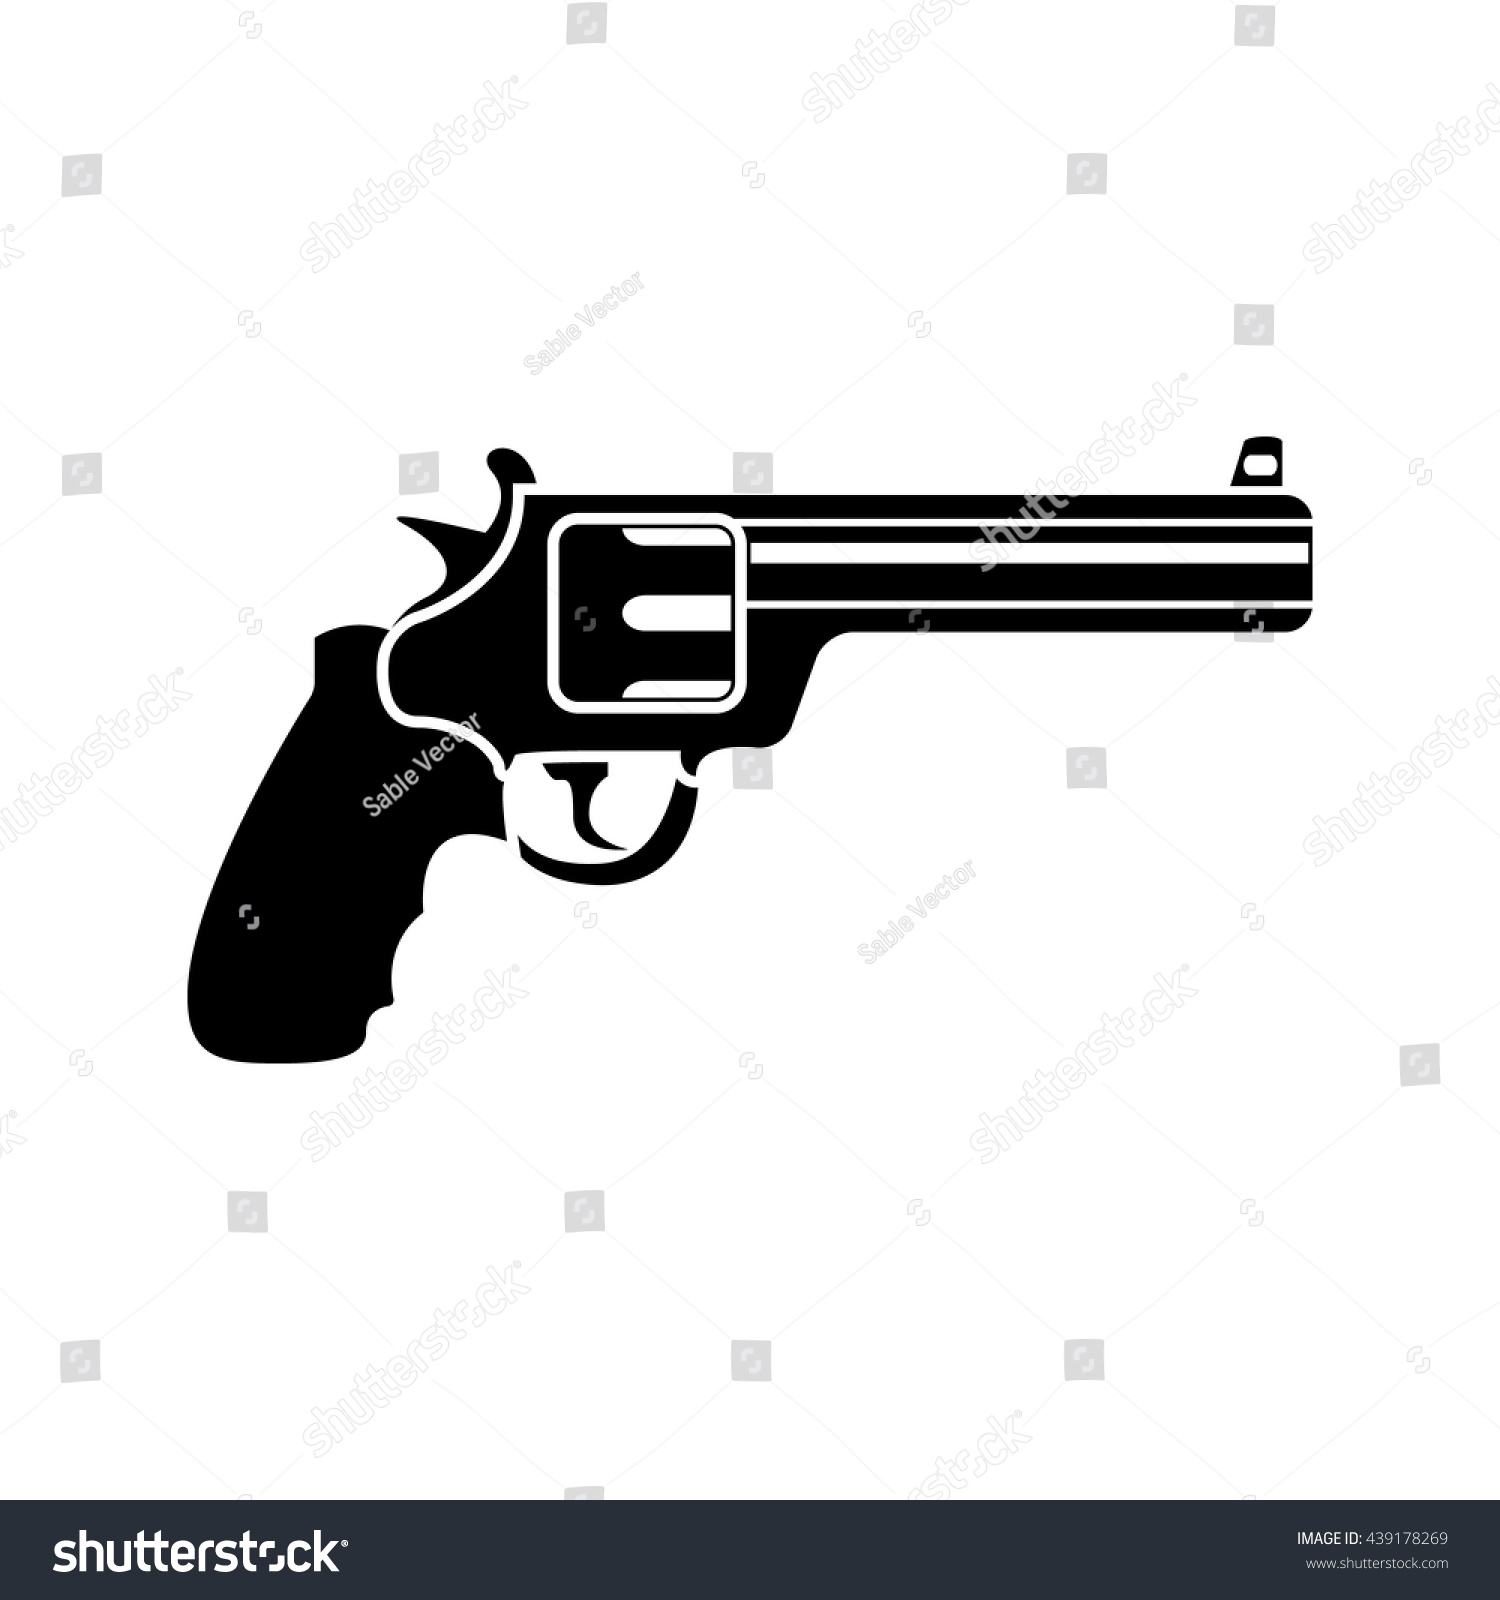 Magnum Revolver Black Simple Icon Vector Stock-Vektorgrafik ...